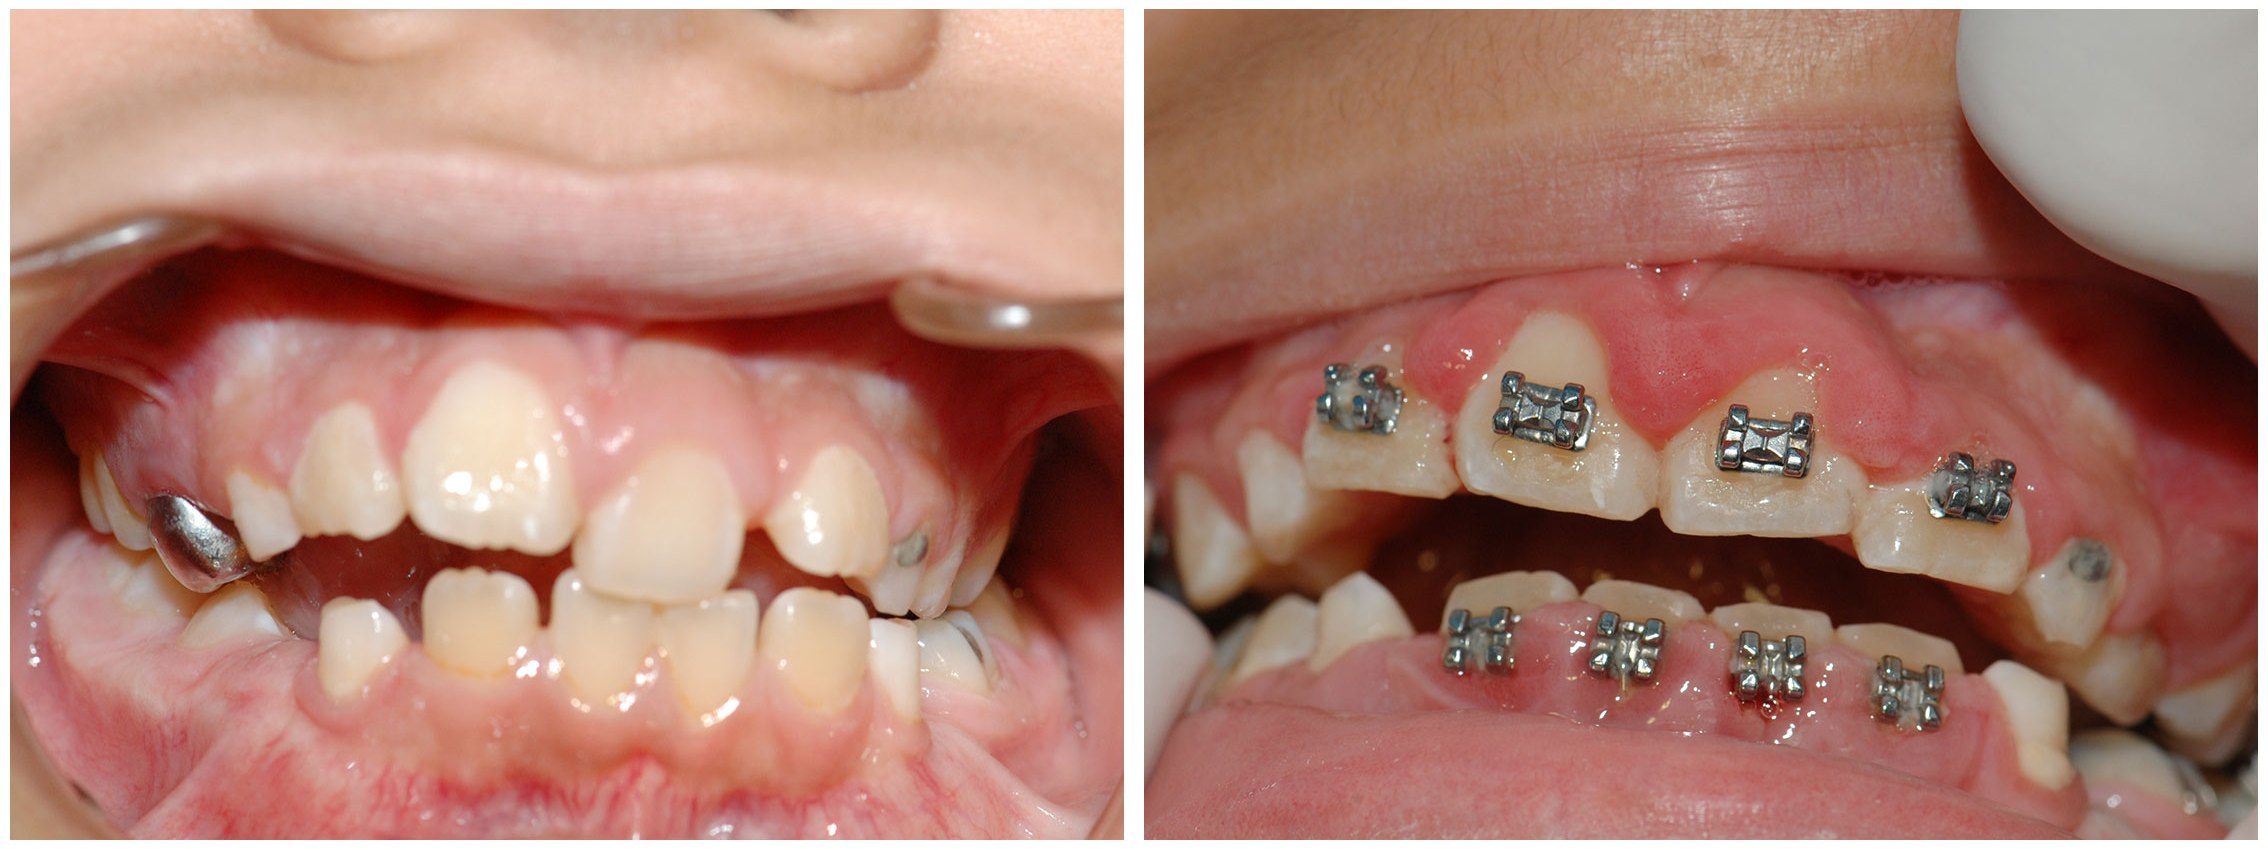 Periodontist Dental Braces Before & After